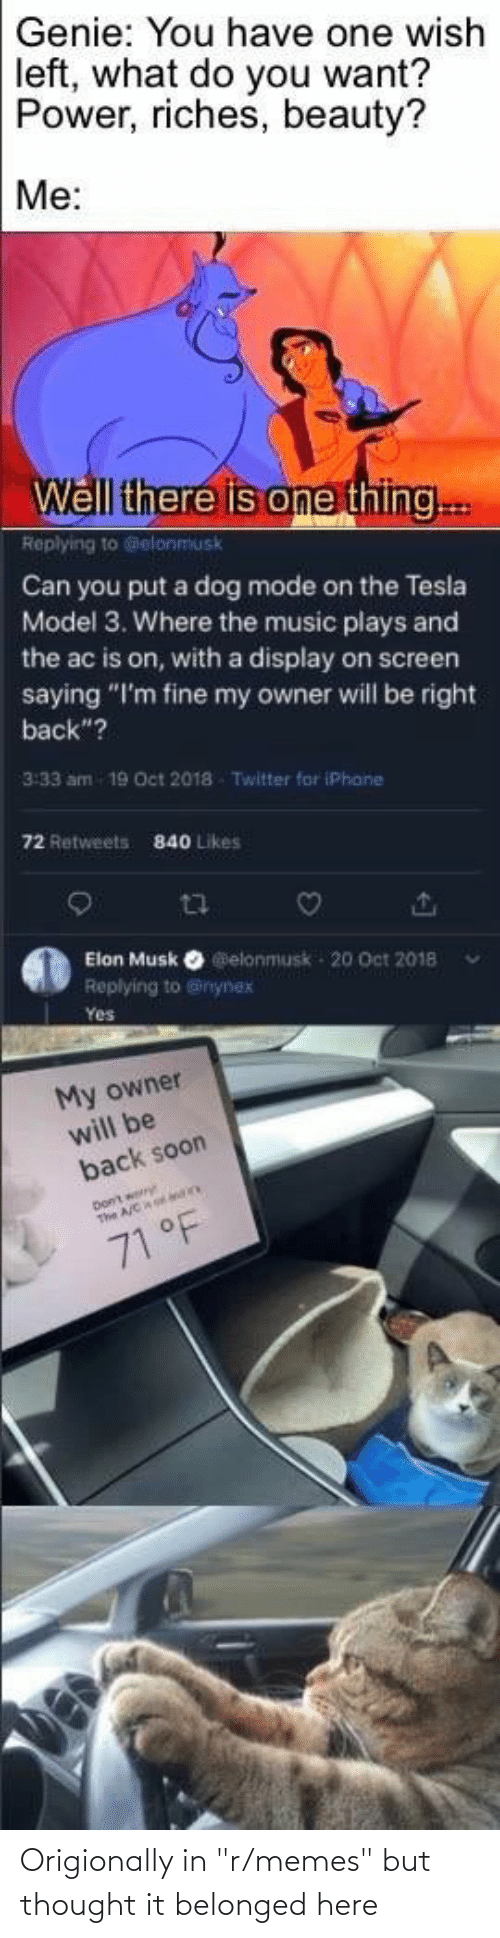 """Elonmusk: Genie: You have one wish  left, what do you want?  Power, riches, beauty?  Me:  Well there is one thing..  Replying to @elonmusk  Can you put a dog mode on the Tesla  Model 3. Where the music plays and  the ac is on, with a display on screen  saying """"I'm fine my owner will be right  back""""?  3:33 am 19 Oct 2018 Twitter for iPhane  72 Retweets  840 Likes  Elon Musk O elonmusk - 20 Oct 2018  Replying to @nynex  Yes  My owner  will be  back soon  The ACao dn  71 °F Origionally in """"r/memes"""" but thought it belonged here"""